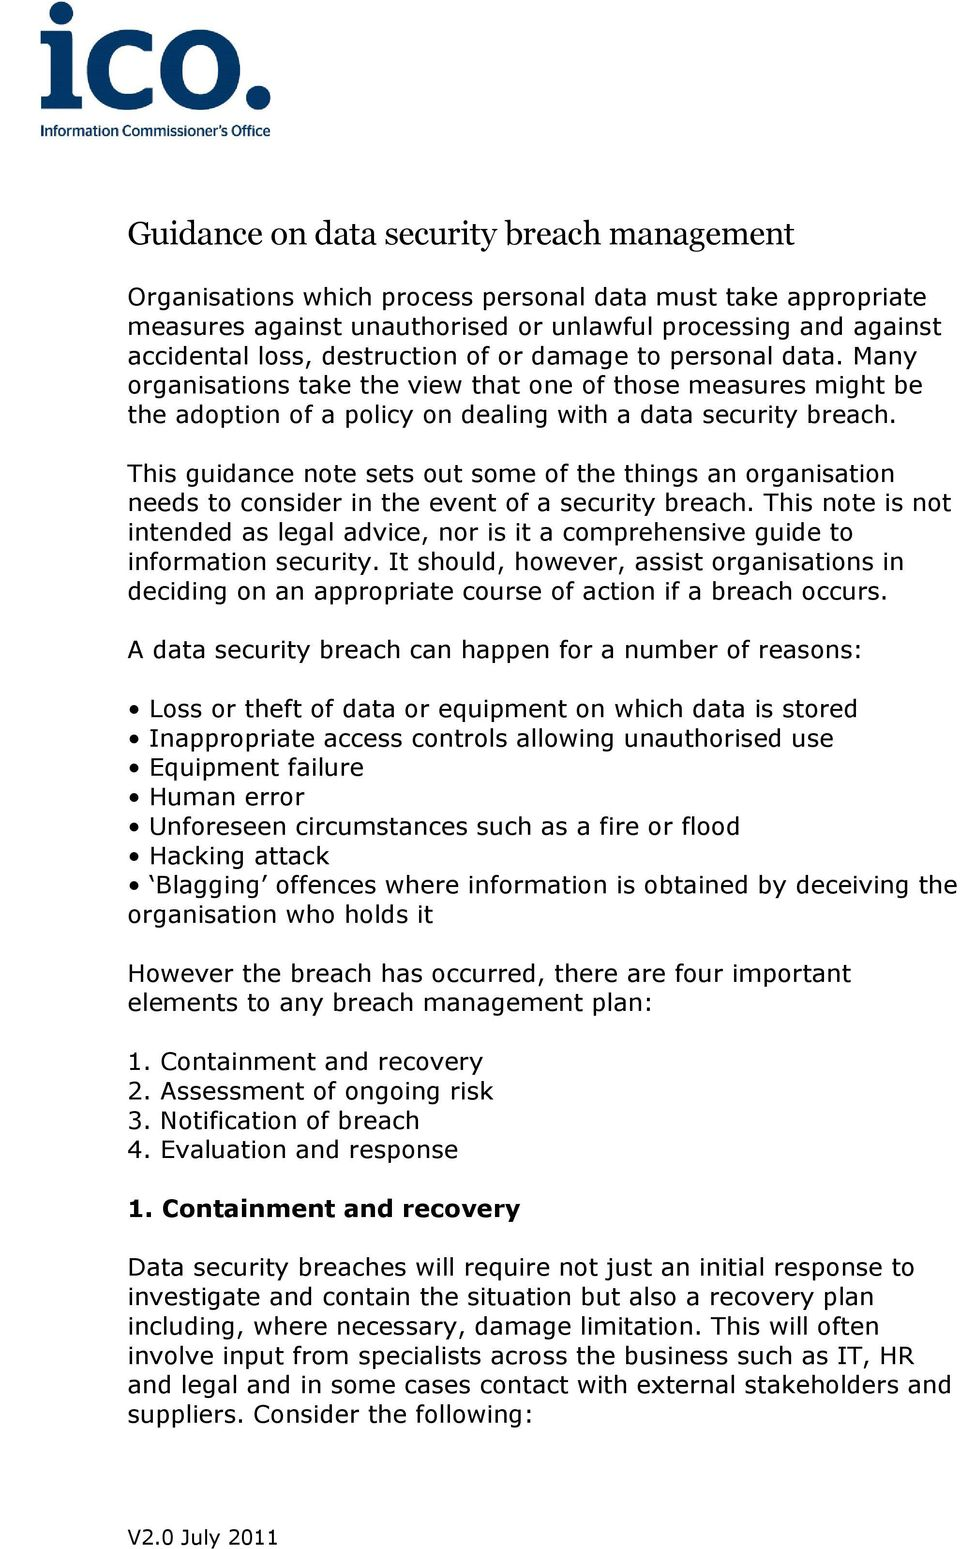 This guidance note sets out some of the things an organisation needs to consider in the event of a security breach.